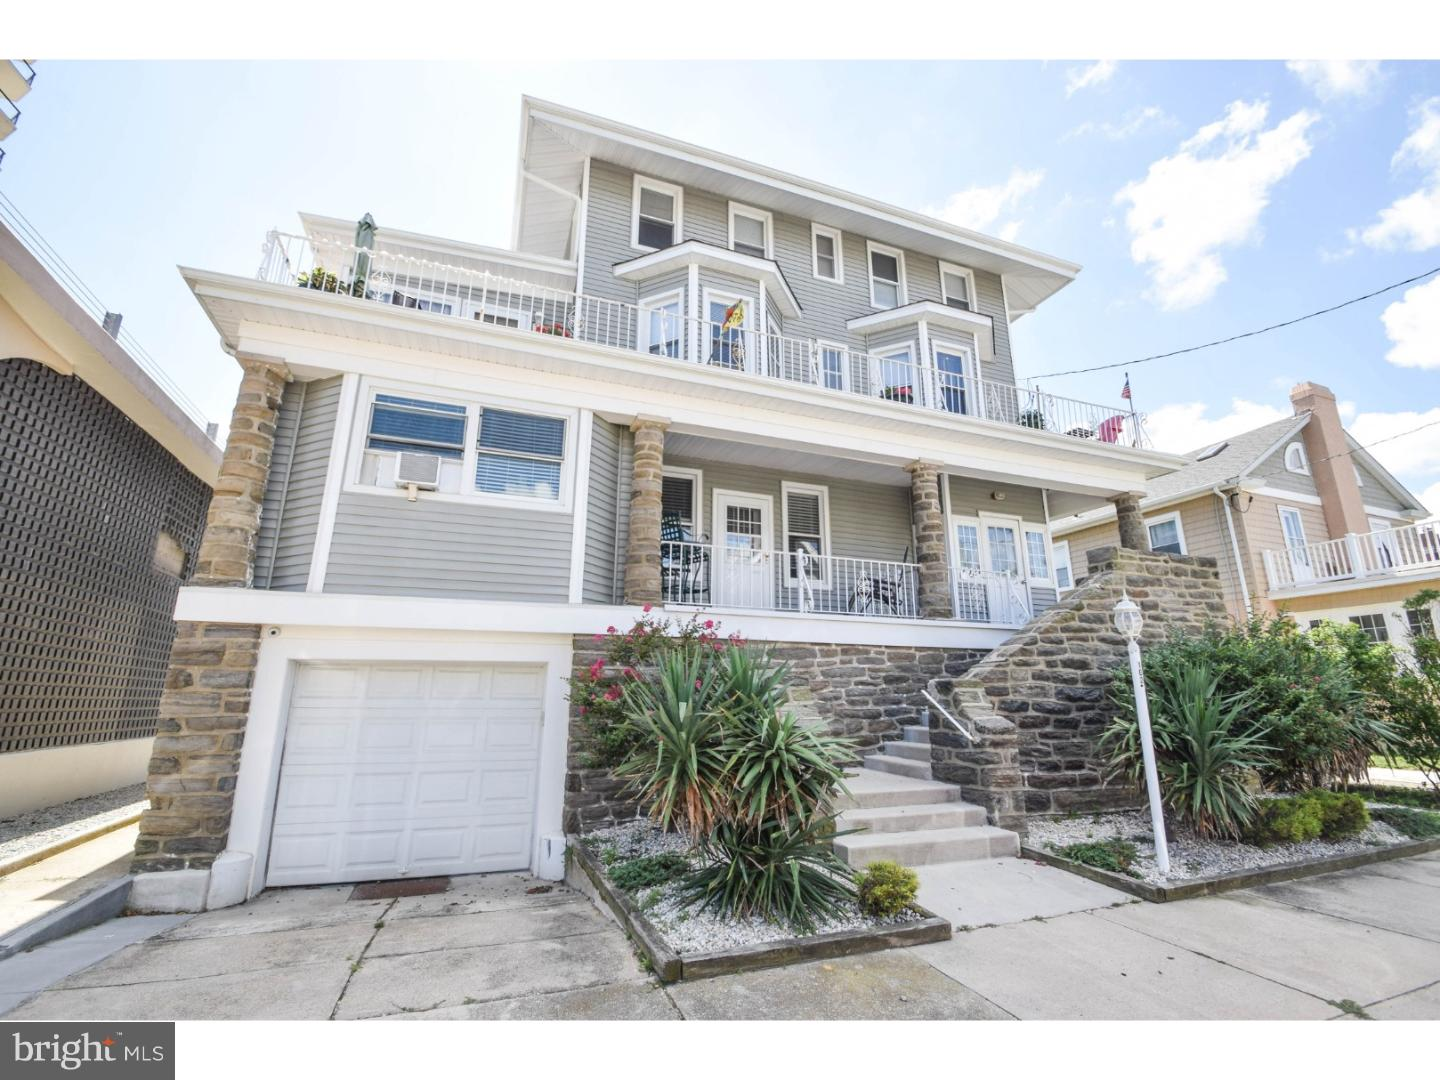 102 S JACKSON AVENUE, VENTNOR CITY, NJ 08406